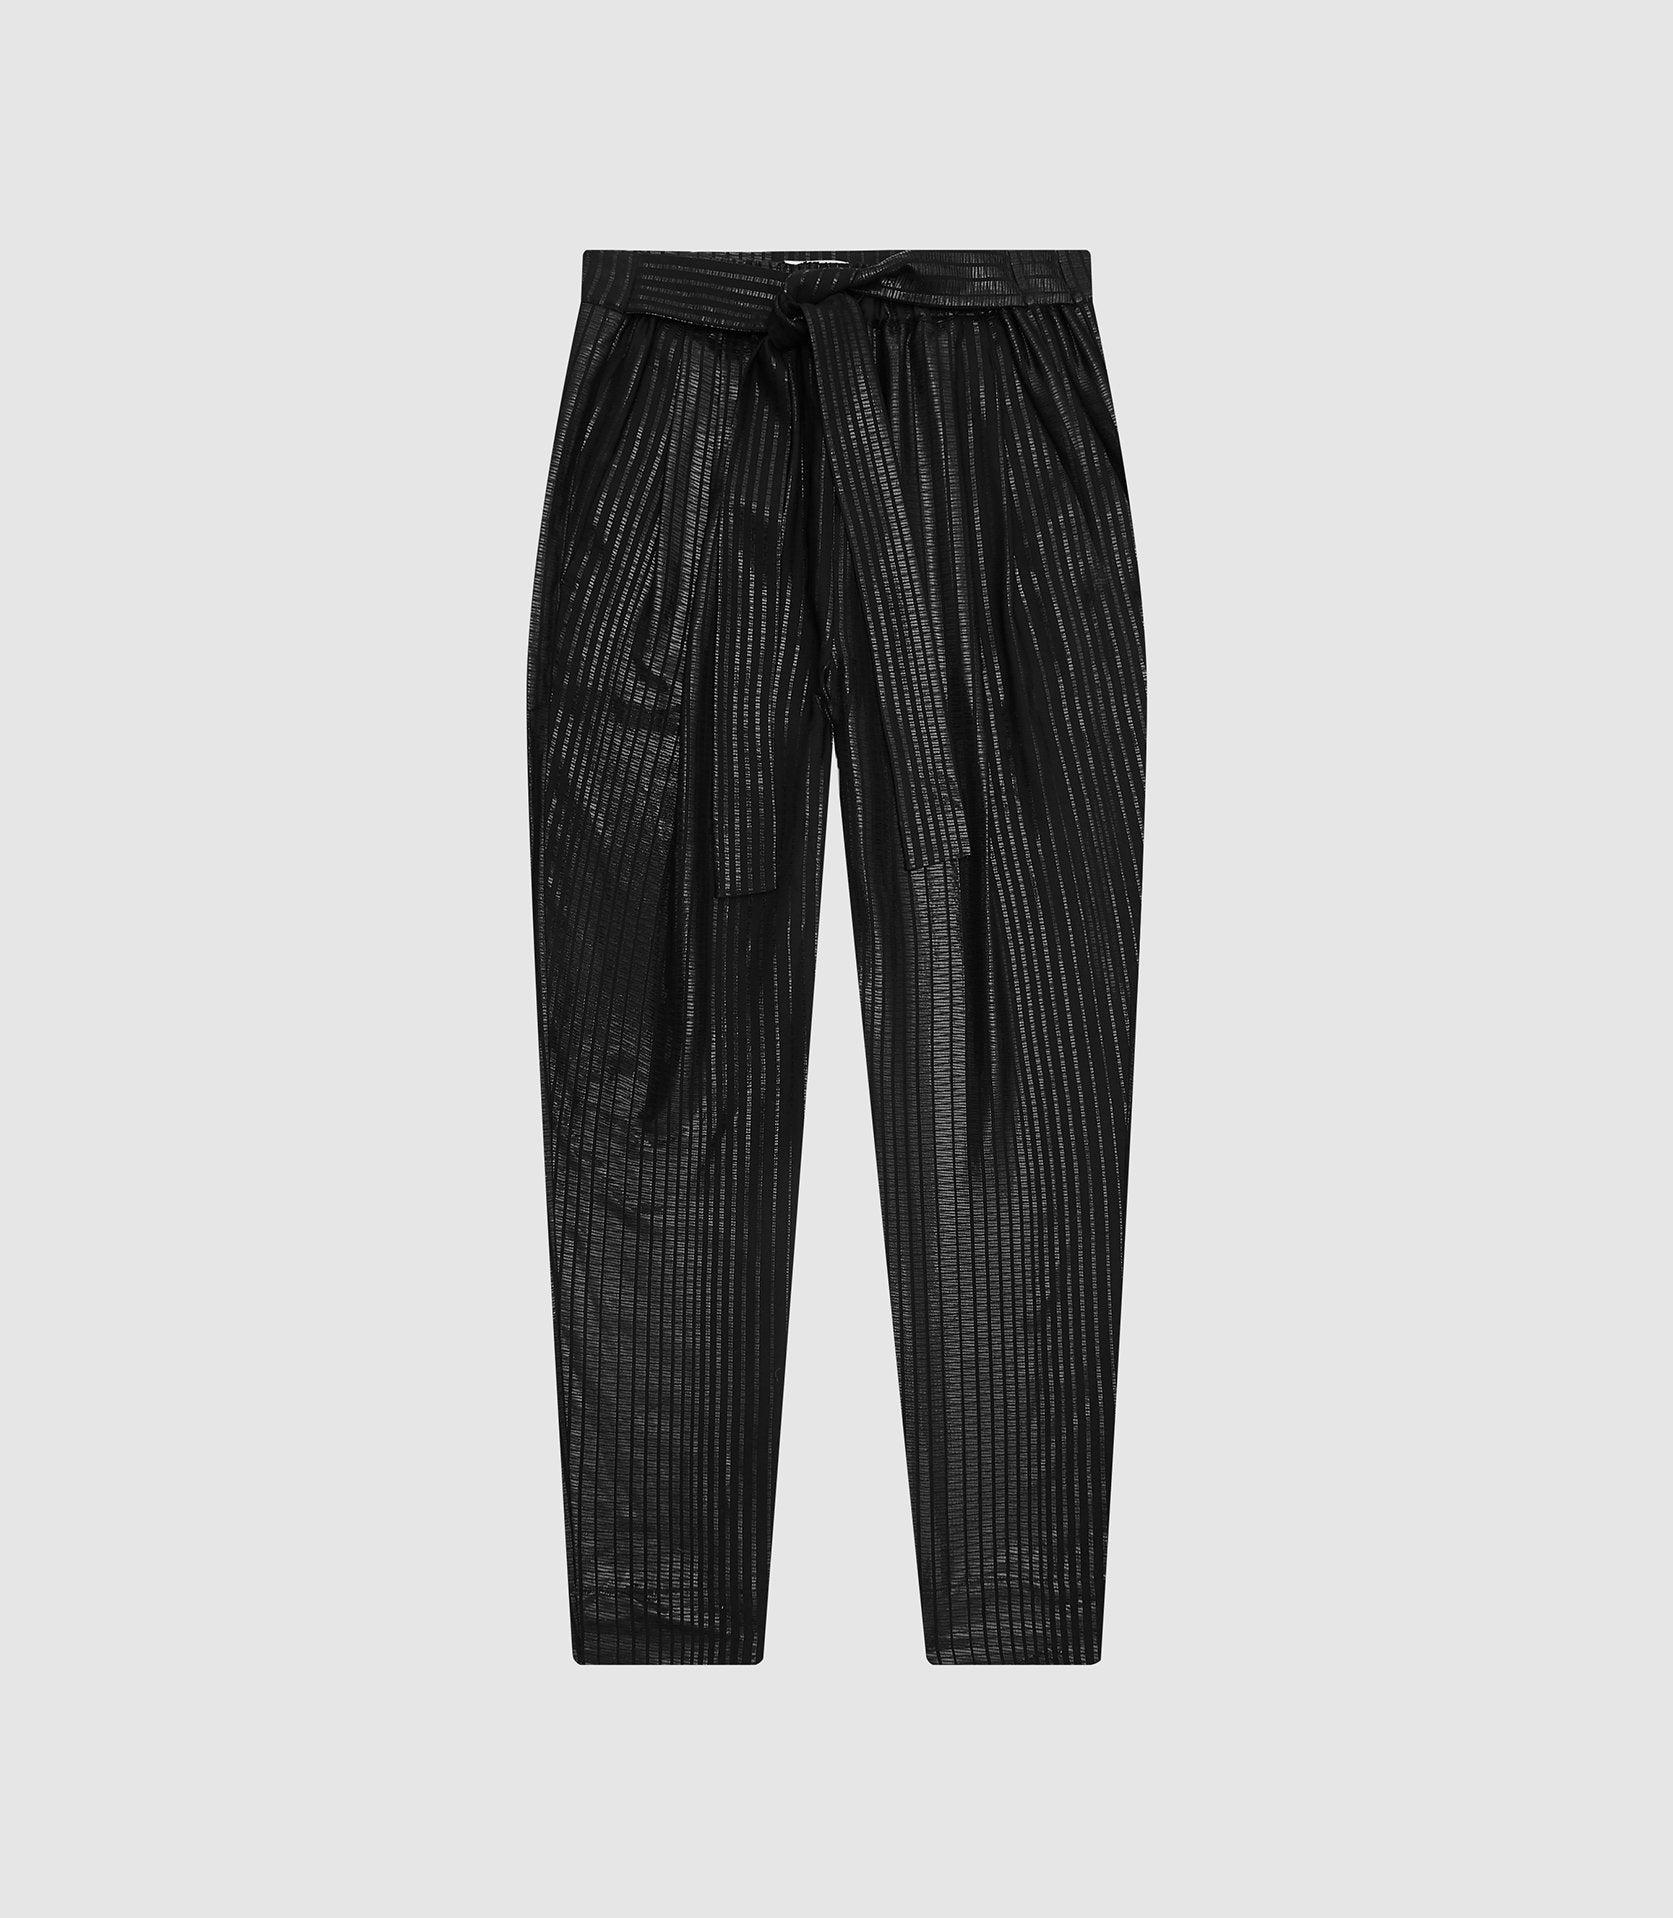 PENNIE - TAPERED SHIMMER TROUSERS 3